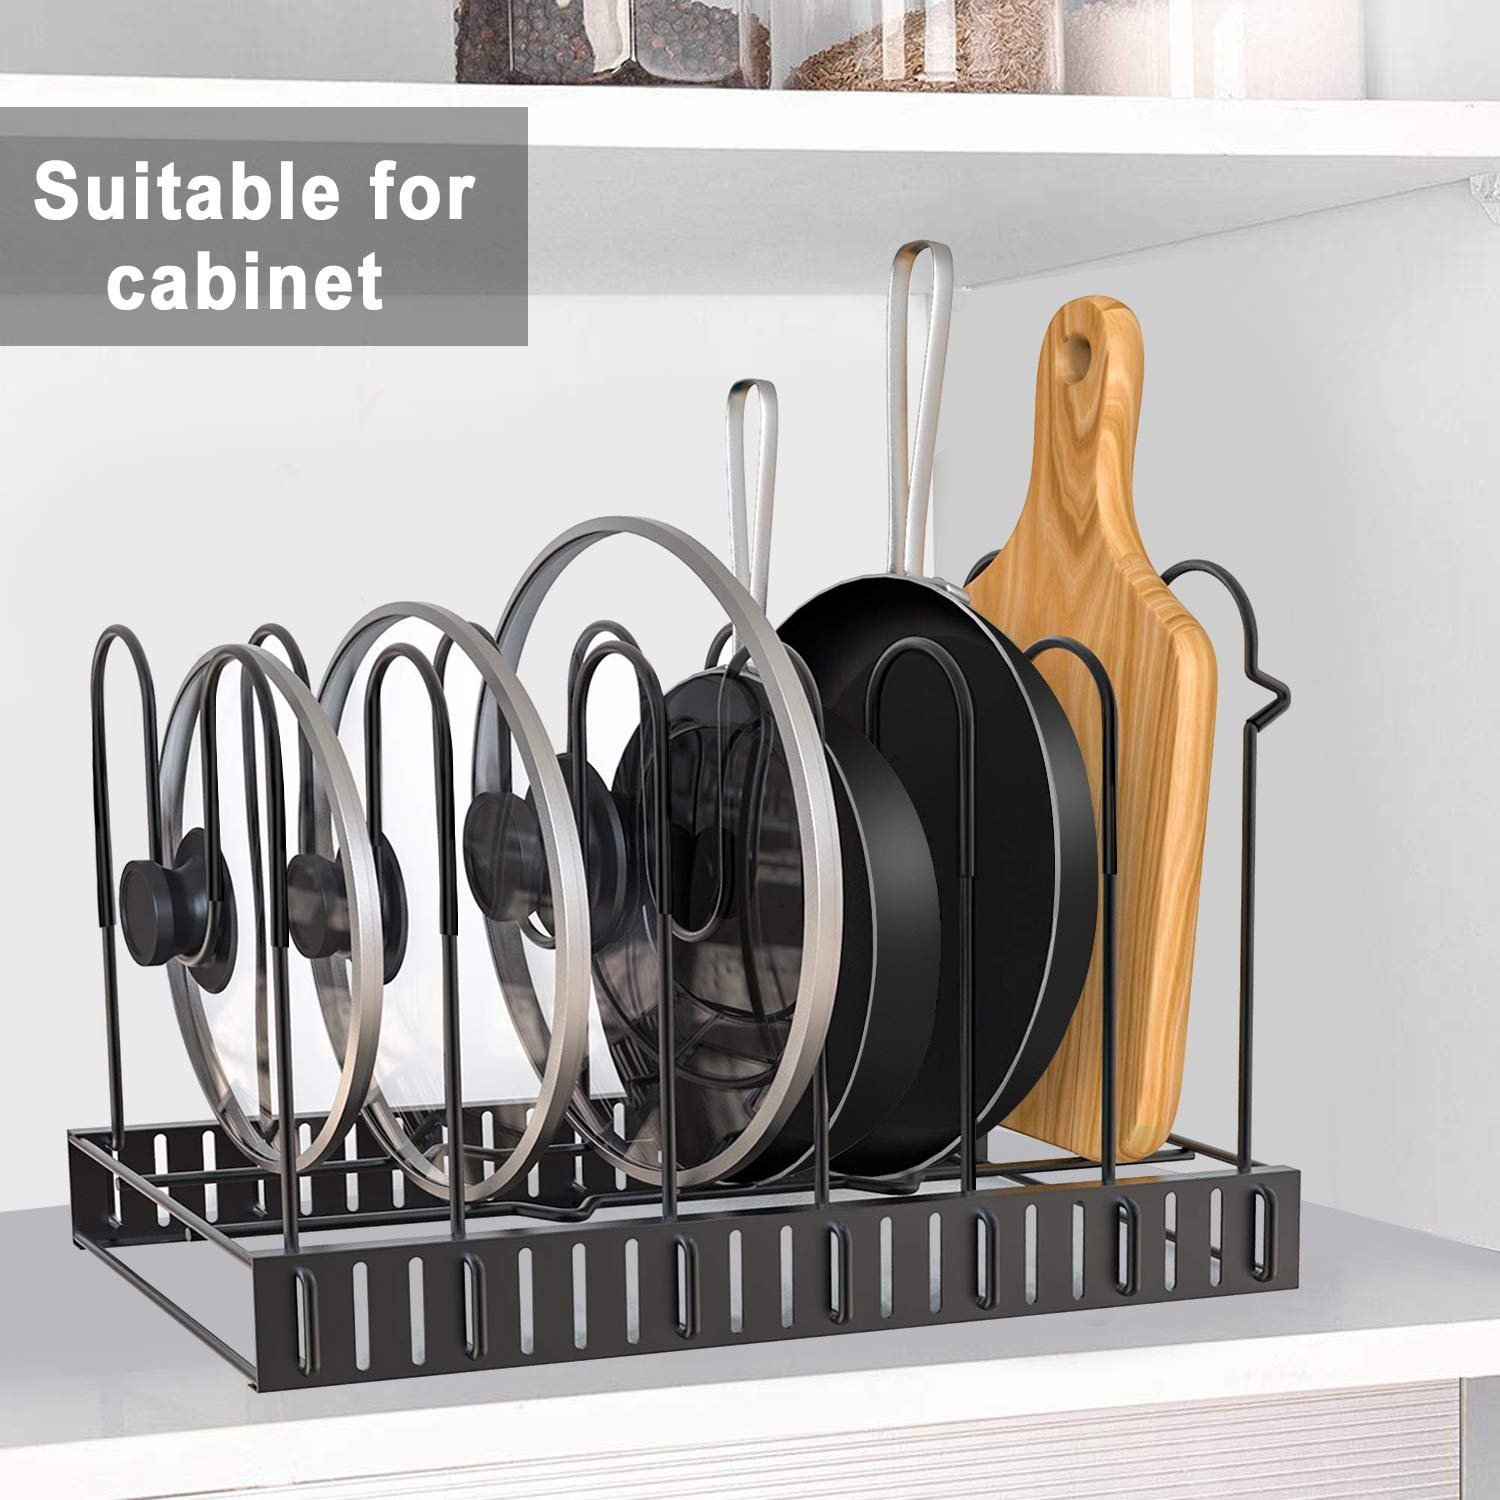 Pot Rack Organizers, G-TING 8 Tiers Pots and Pans Organizer, Adjustable Pot Lid Holders & Pan Rack for Kitchen Counter and Cabinet, Lid Organizer for Pots and Pans With 3 DIY Methods(2019 Upgraded) by G-TING (Image #4)